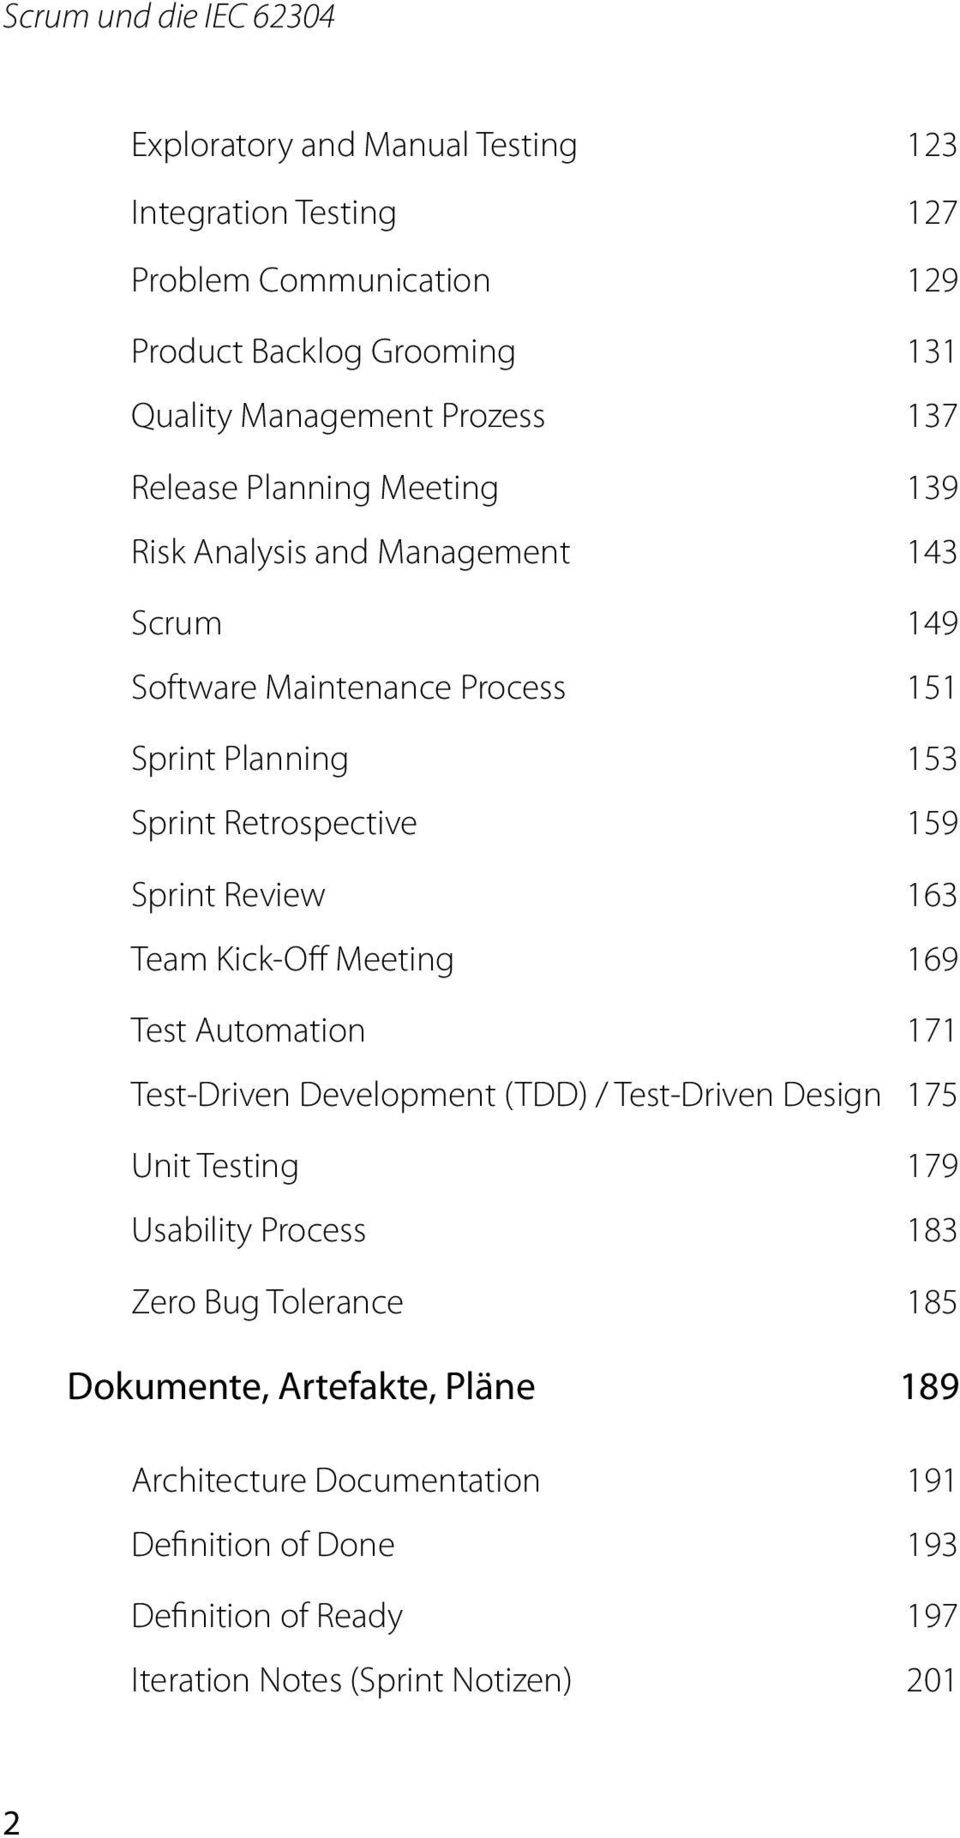 163 Team Kick-Off Meeting 169 Test Automation 171 Test-Driven Development (TDD) / Test-Driven Design 175 Unit Testing 179 Usability Process 183 Zero Bug